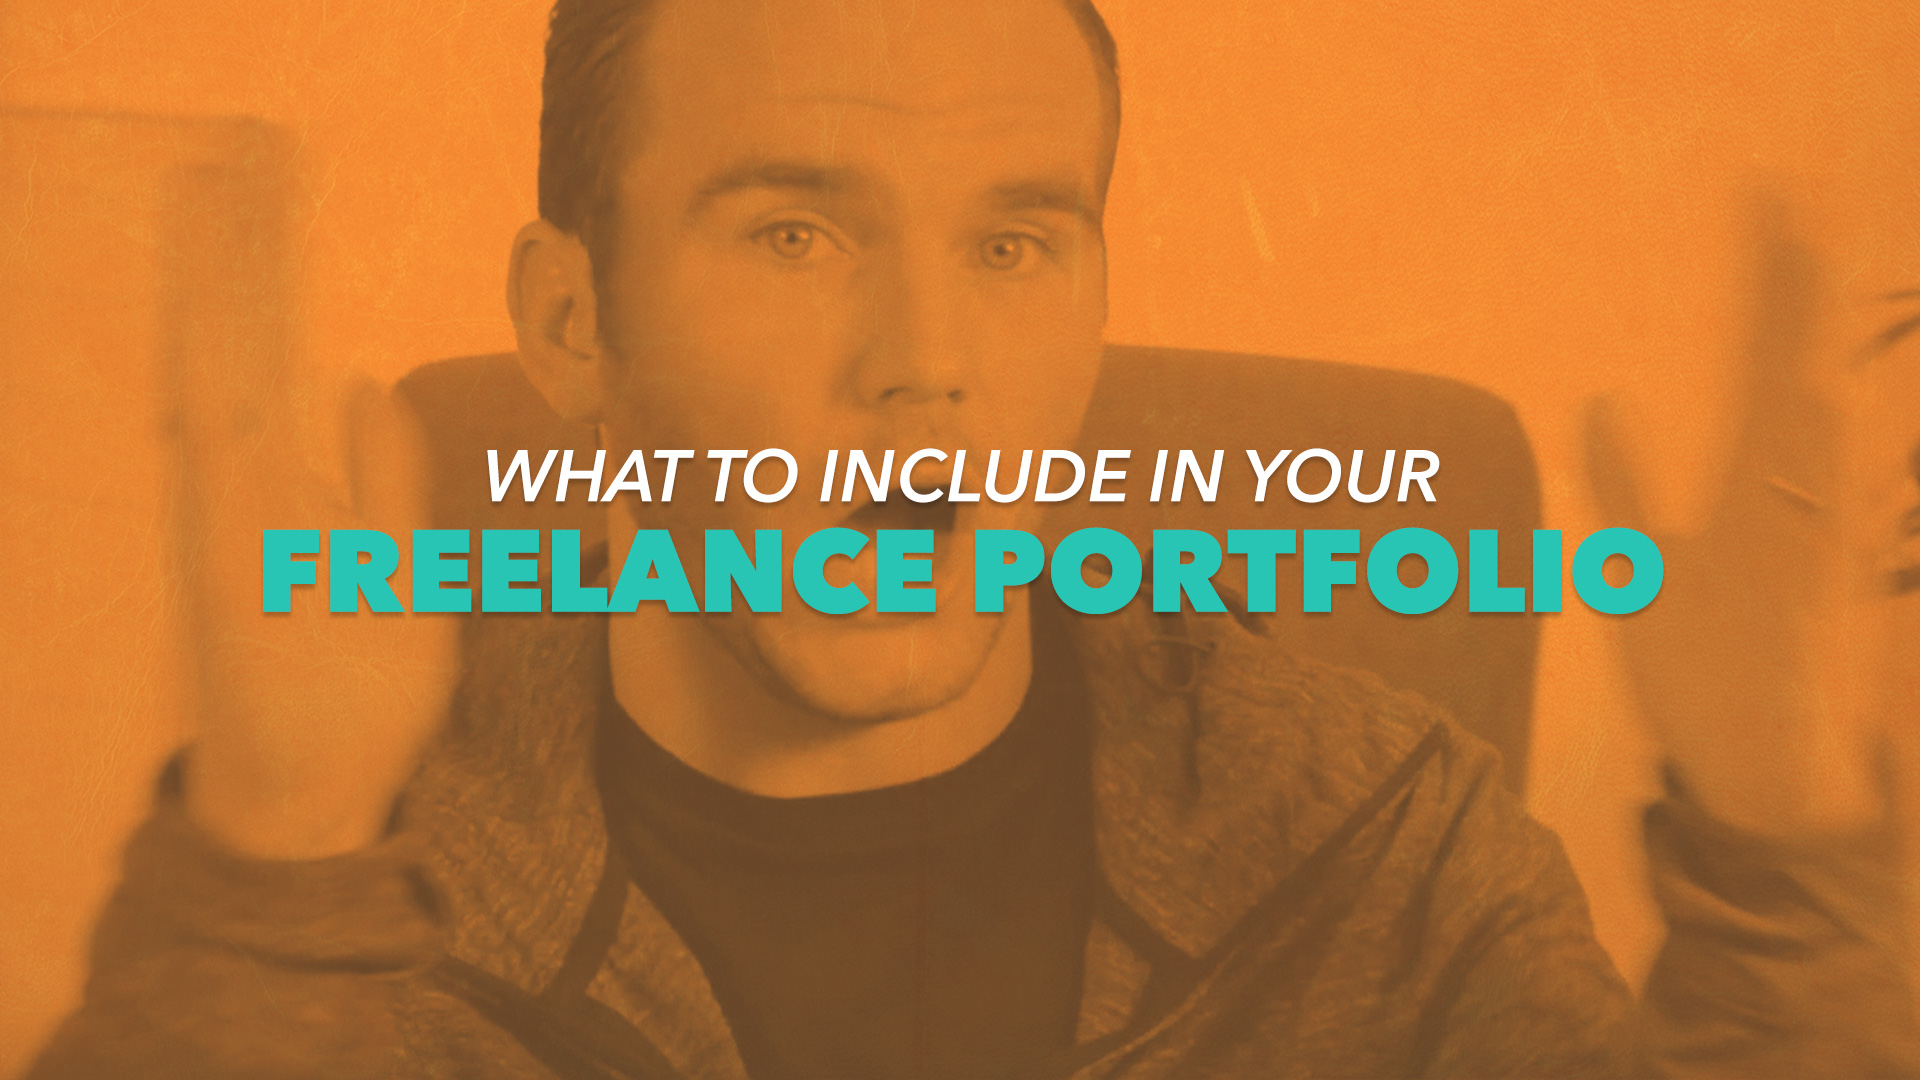 What to include in your freelance portfolio